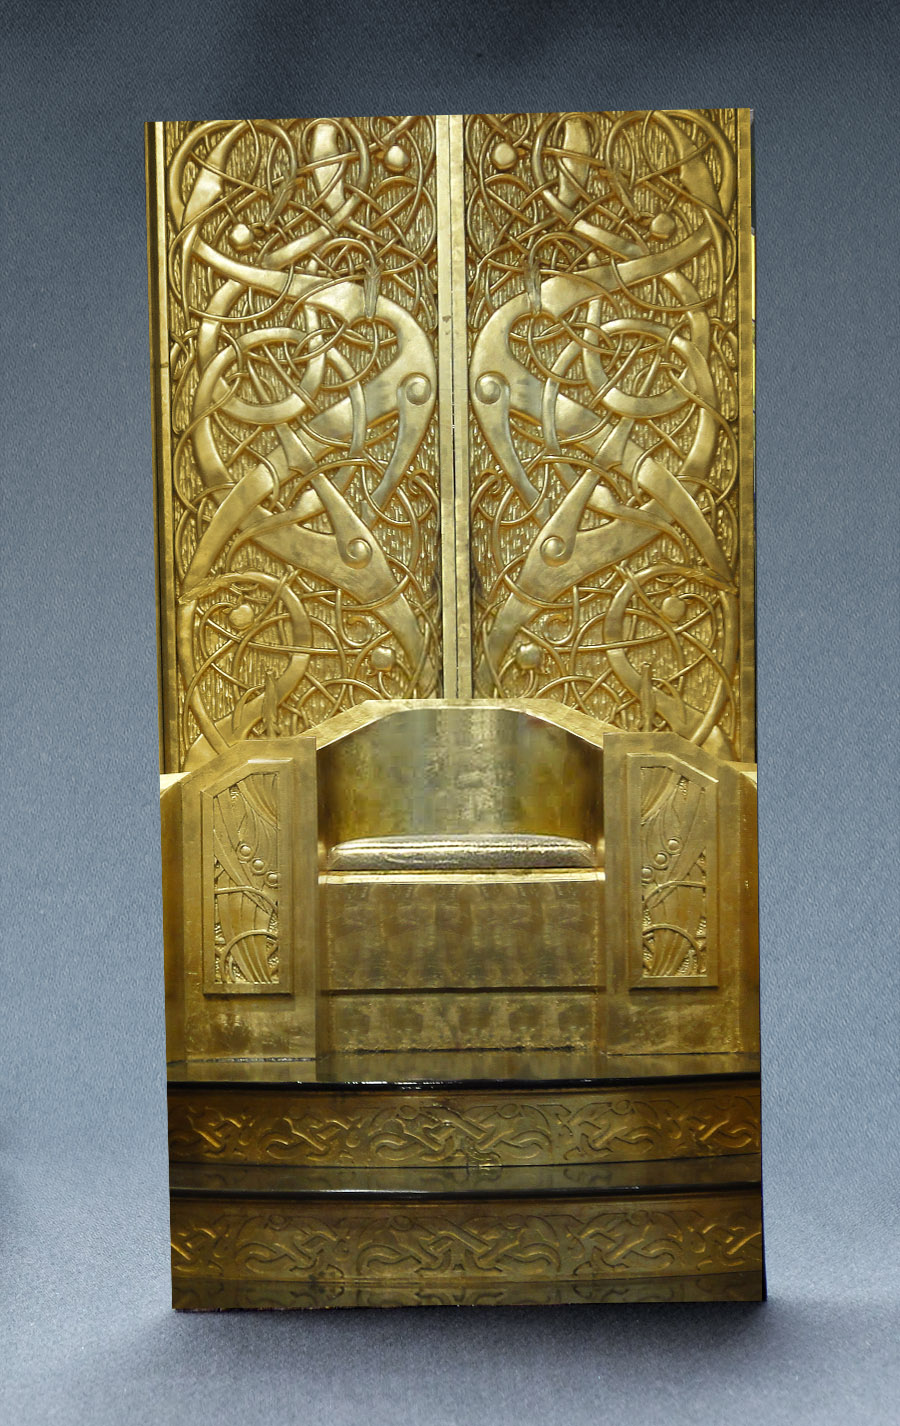 Golden Throne 1:6 Scale Striking Backdrop